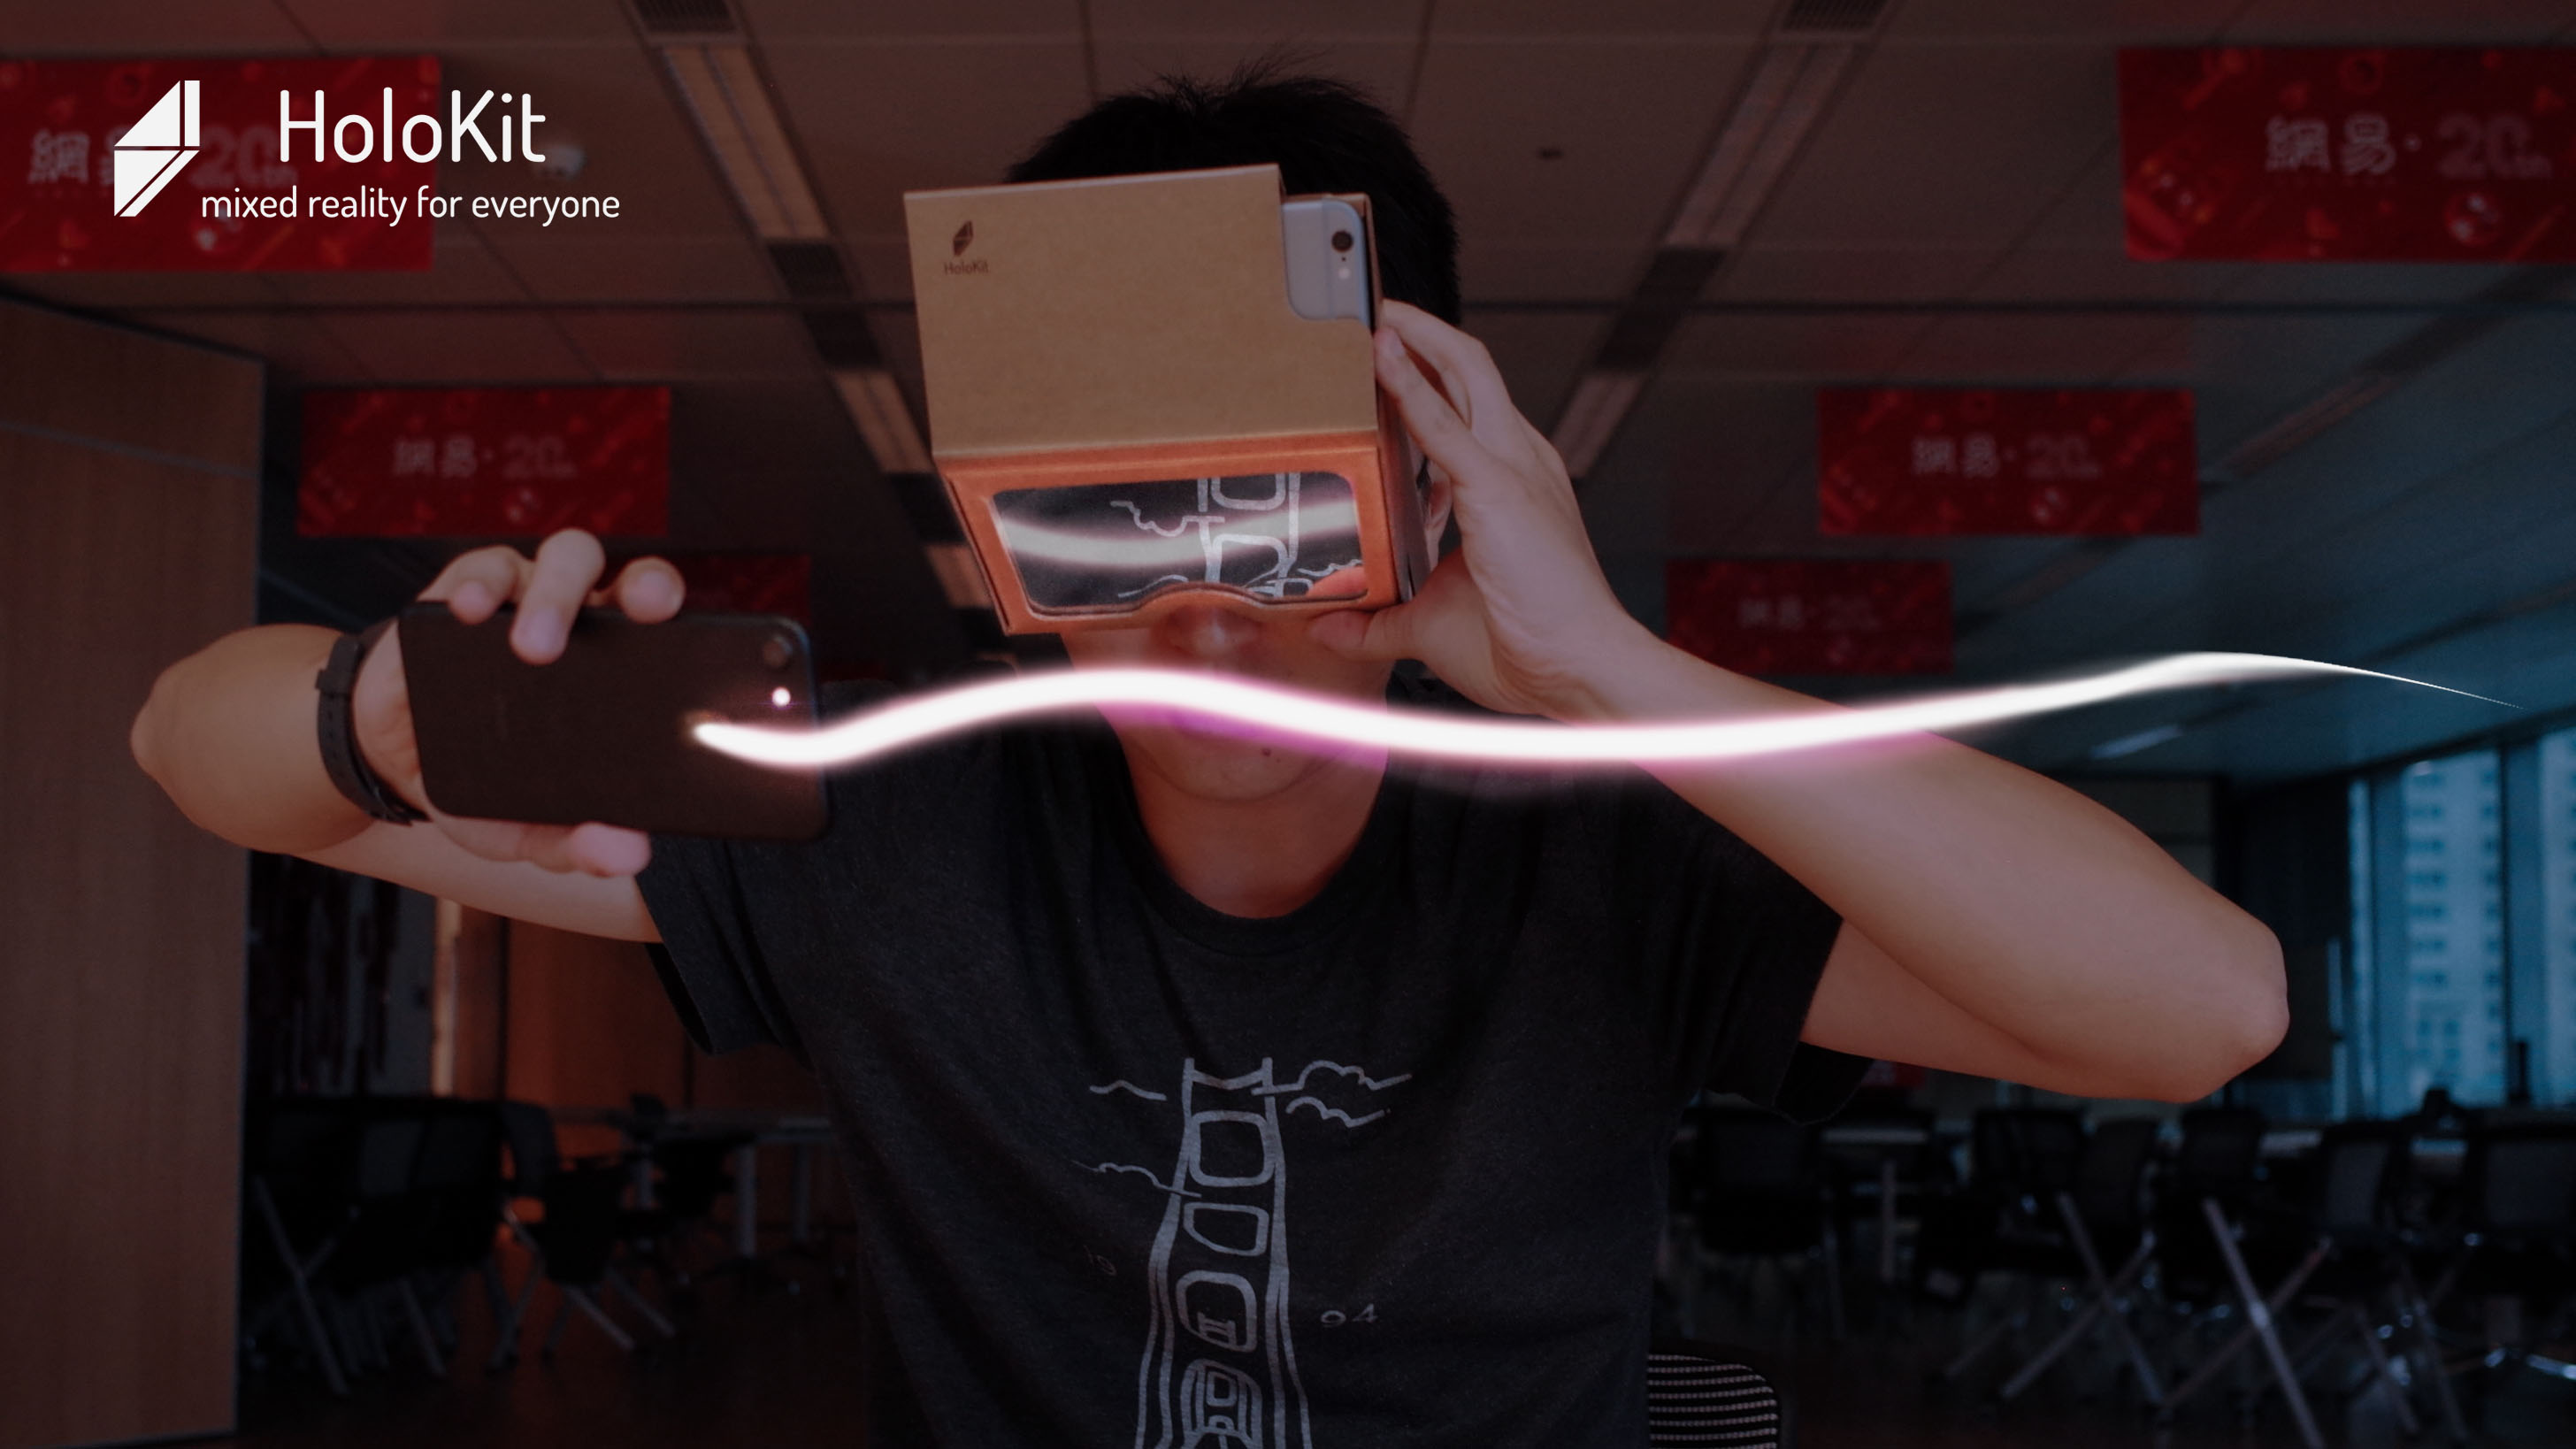 Take VR Into Your Own Hands With These DIY Builds